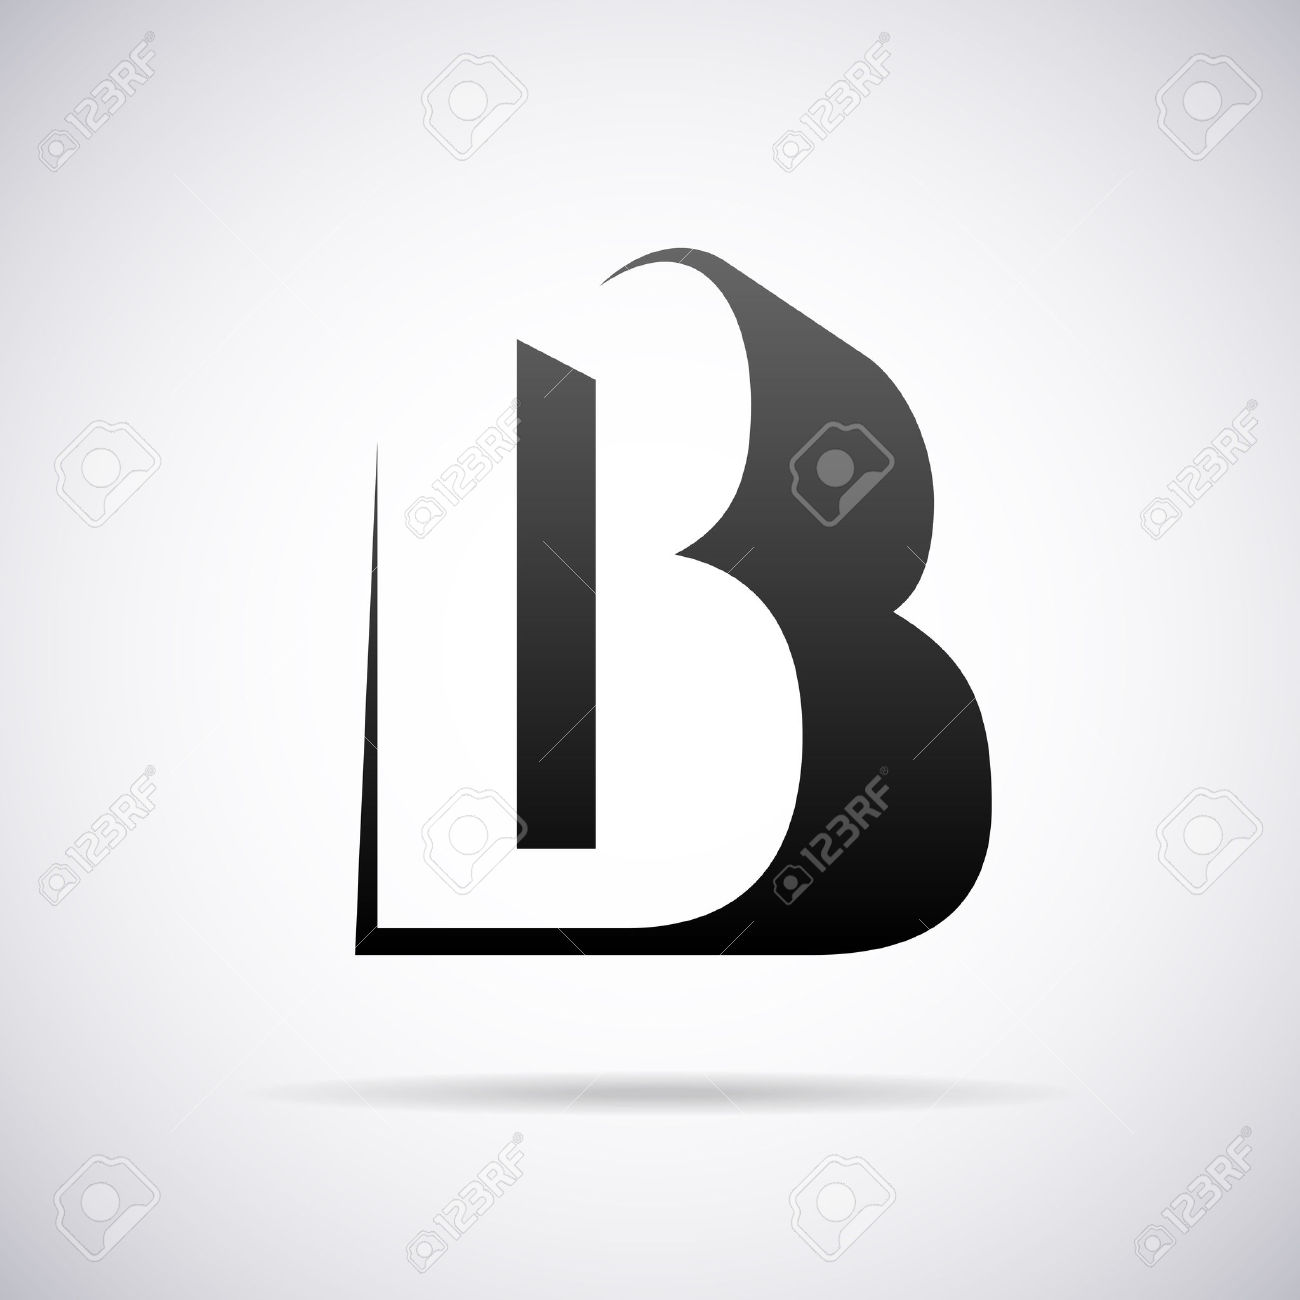 Black and white clipart design letter b clip art black and white stock 8,887 Letter B Stock Illustrations, Cliparts And Royalty Free ... clip art black and white stock